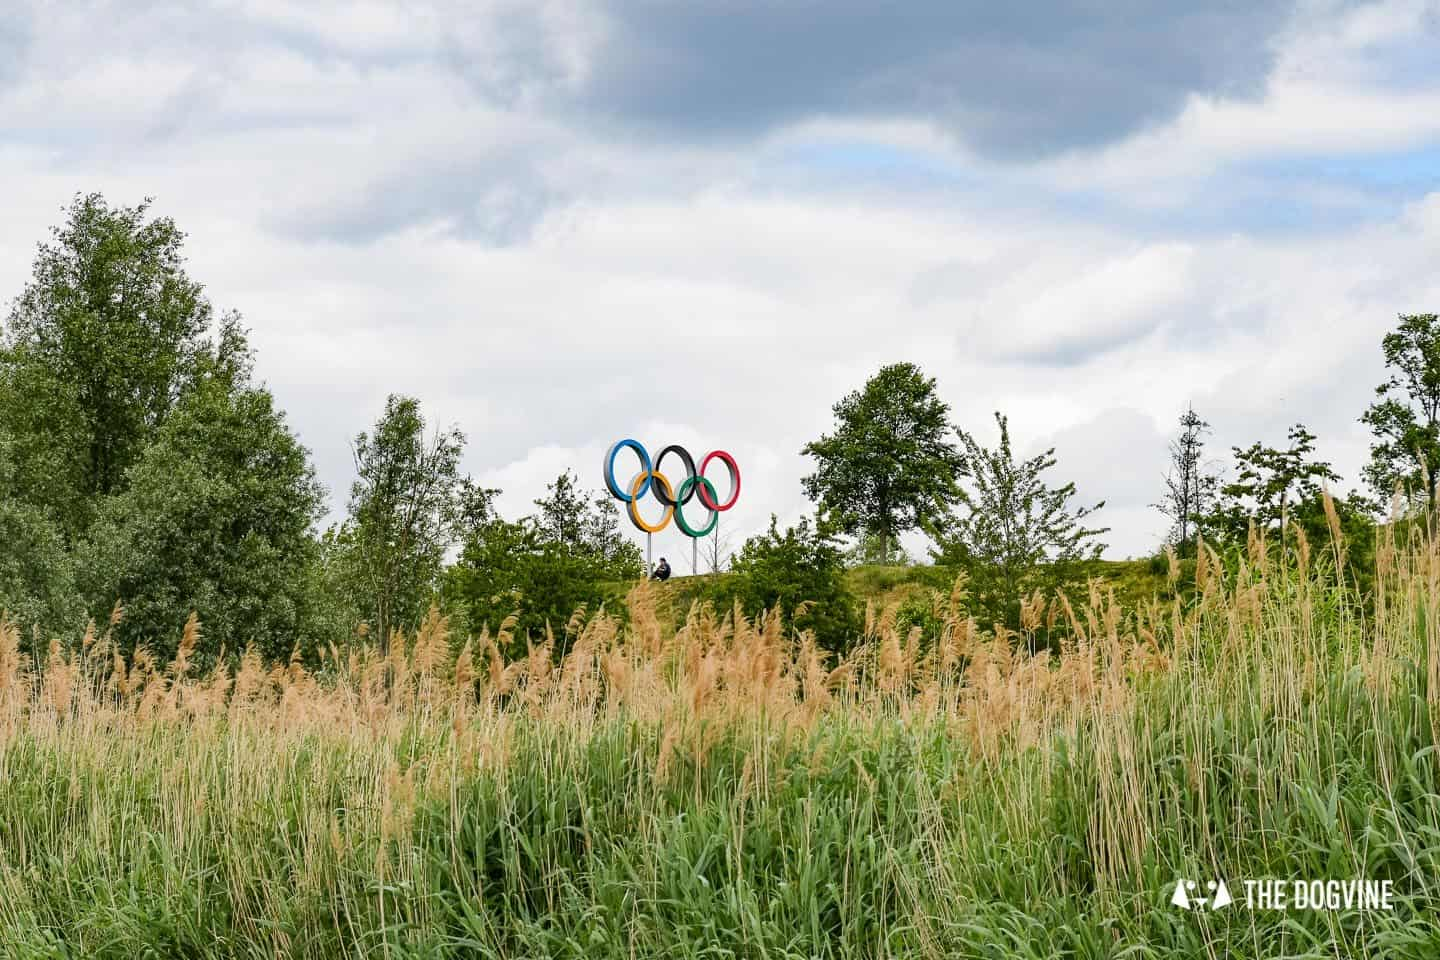 Dog-friendly London The Best Free Dog-friendly Things To Do - Olympic Rings Lee Valley